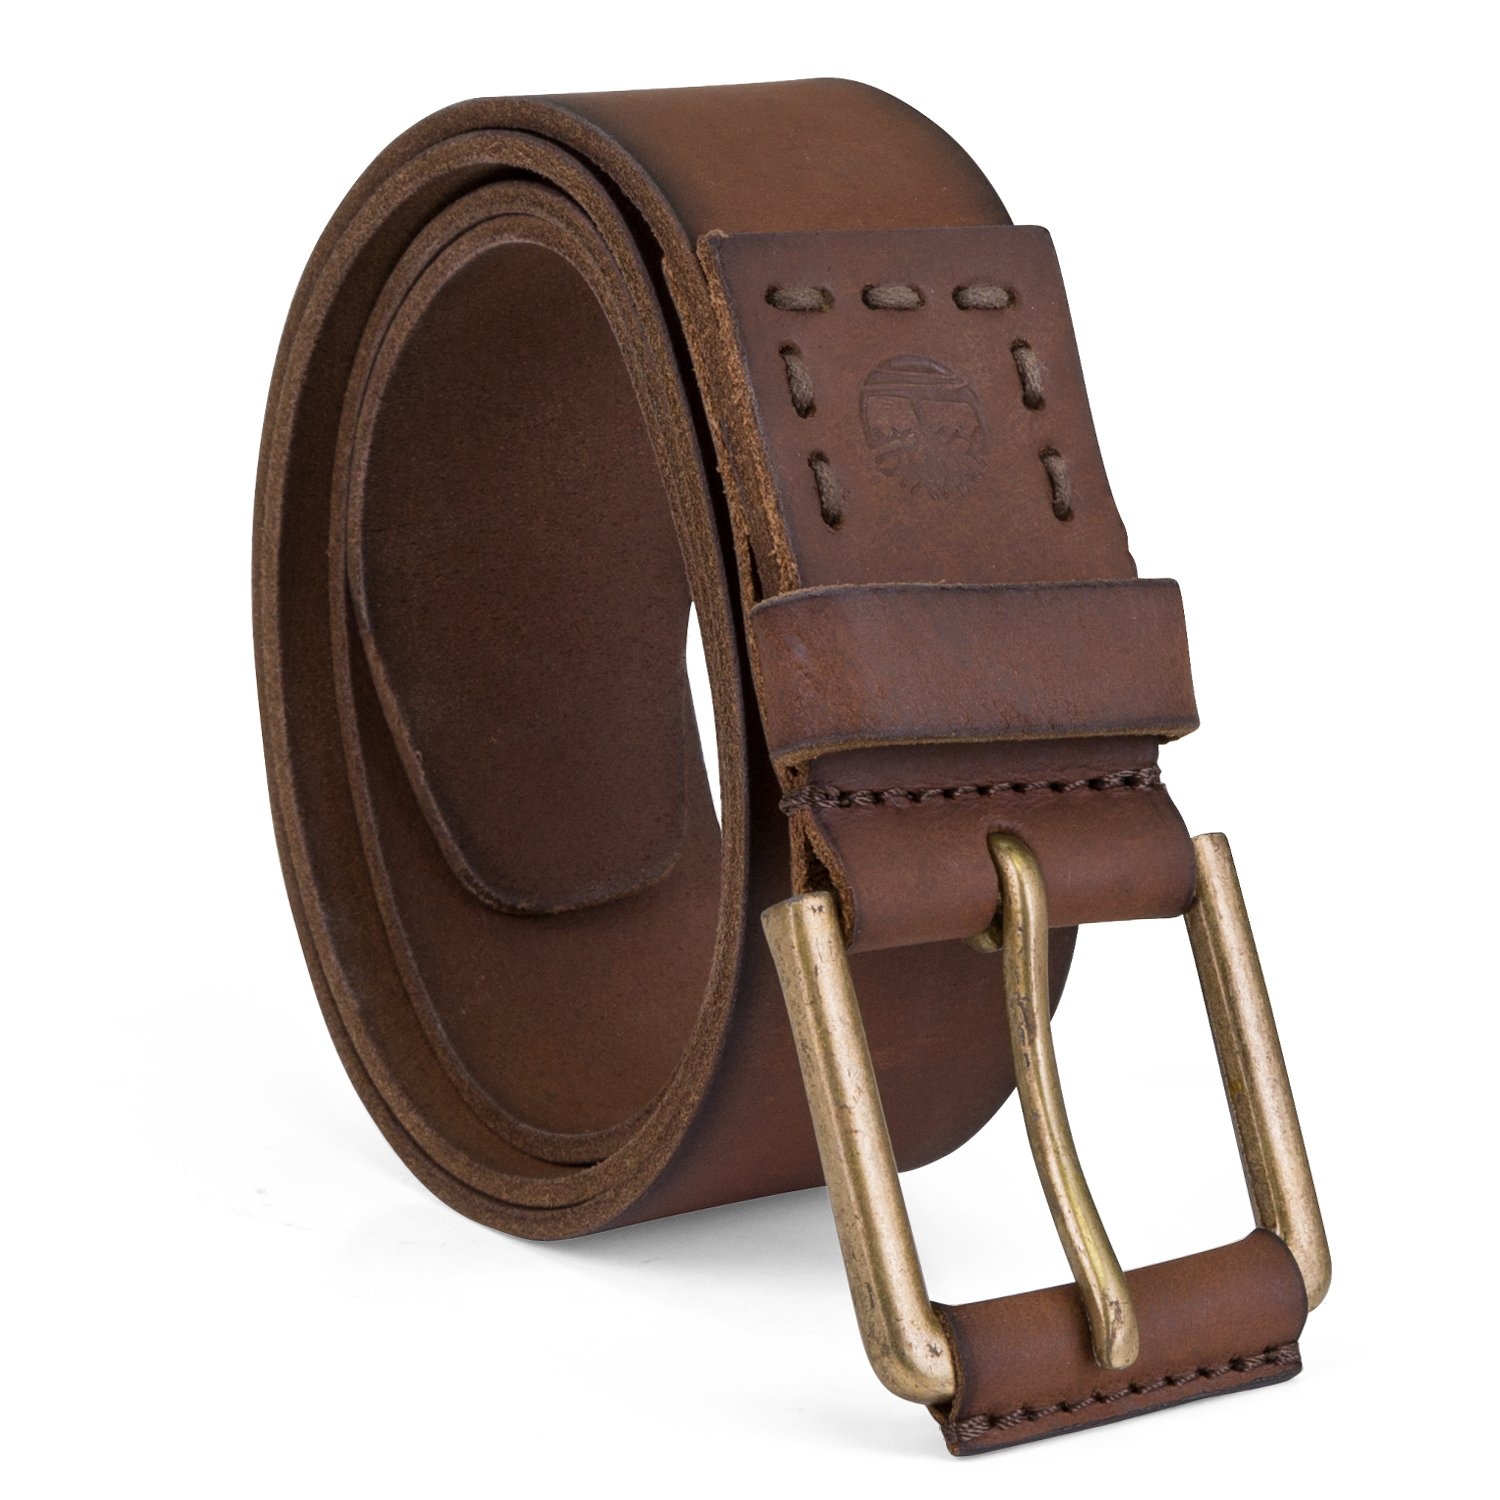 Timberland Men's 40Mm Pull Up Leather Belt, Brown, 44